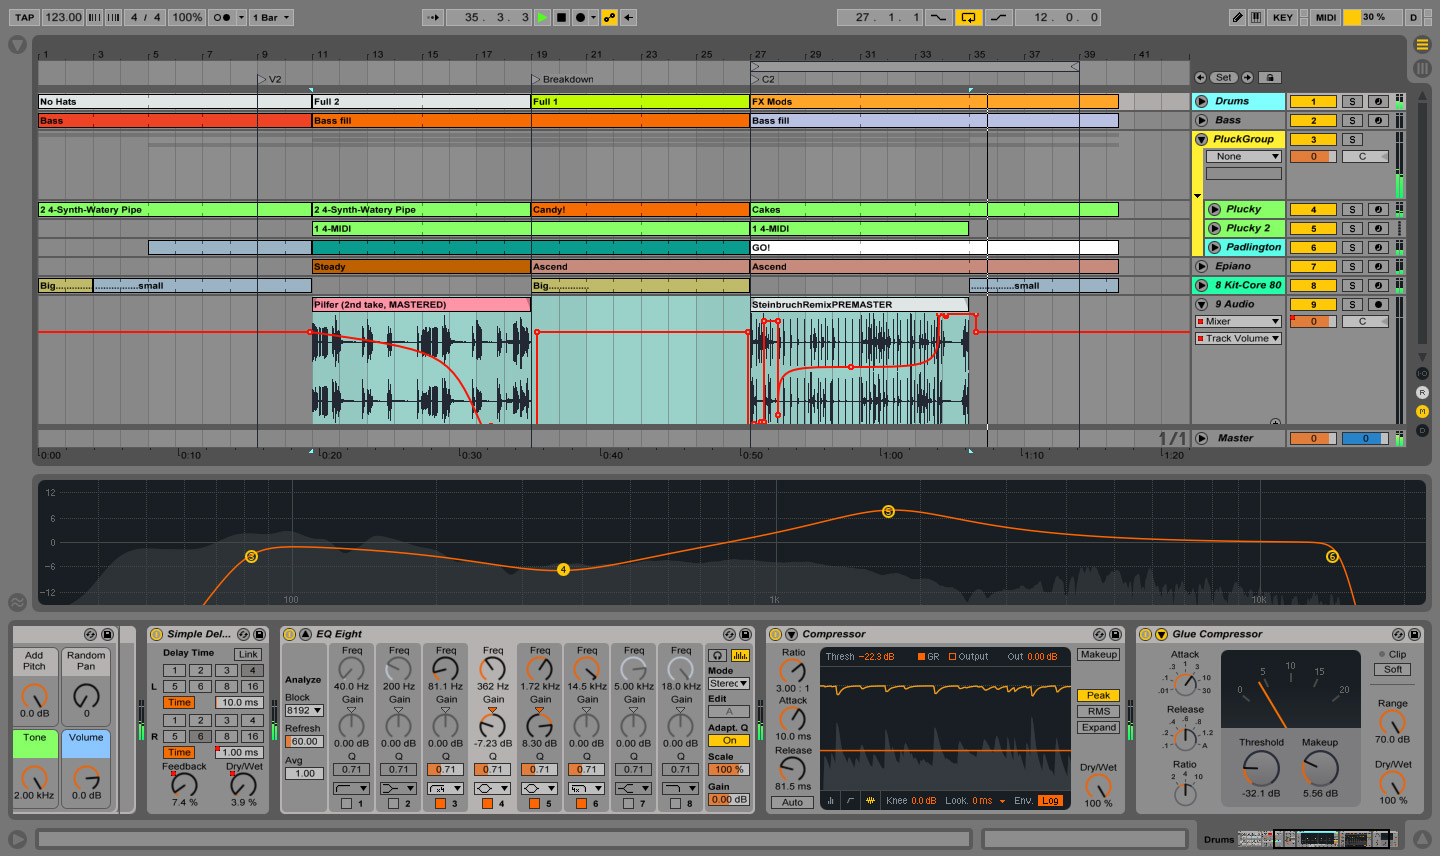 Download Ableton Live 9 Full Cracked + Tutorial 3